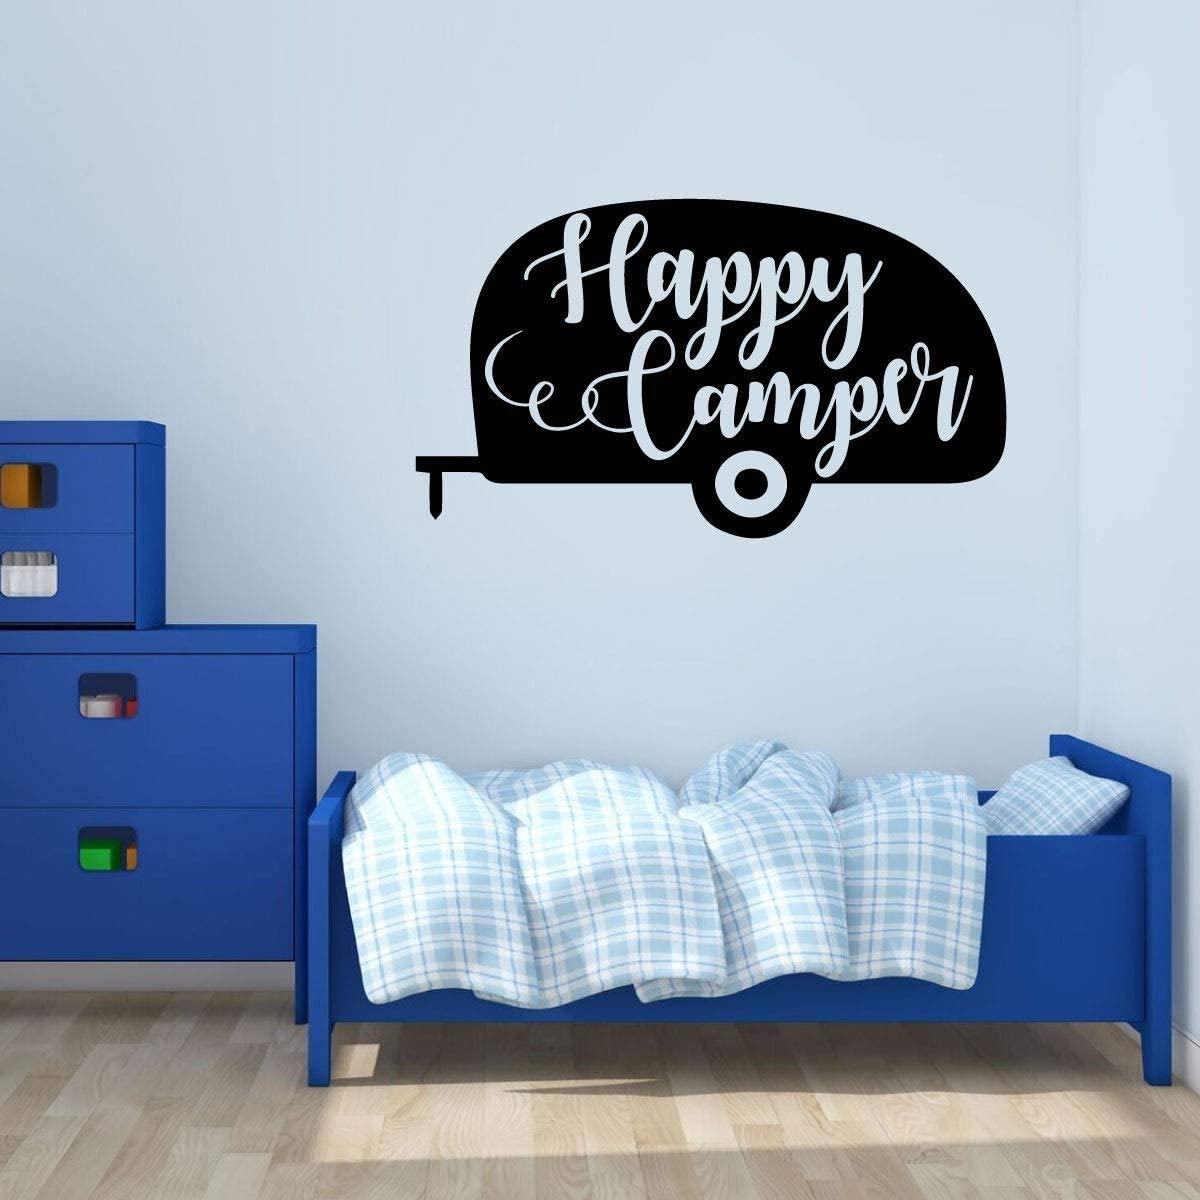 Happy Camper Vinyl Decal - Outdoor and Nature Themed Wall Sticker for Cabins, Cottages, Summer Camps, Home D|cor | Camper Silhouette 15.7